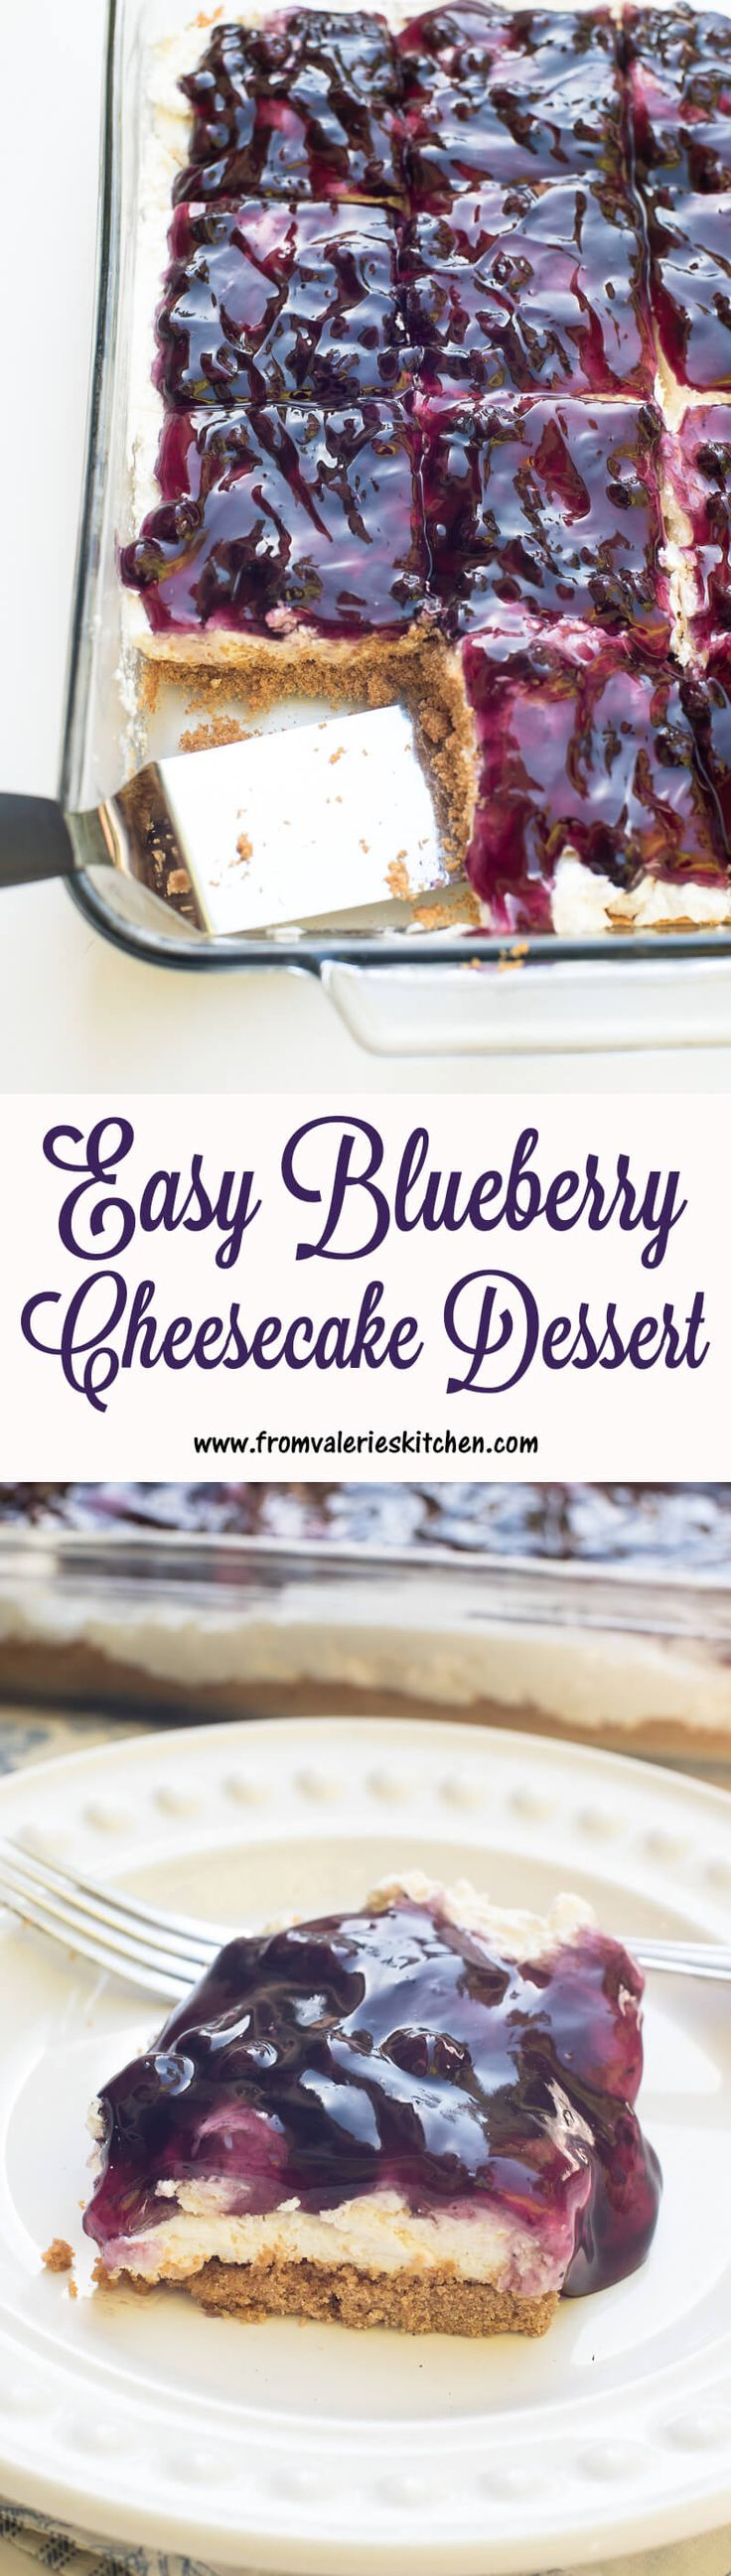 This Easy Blueberry Cheesecake Dessert with a light and creamy no-bake cheesecake layer is a fabulous make-ahead dessert choice for any time of year!